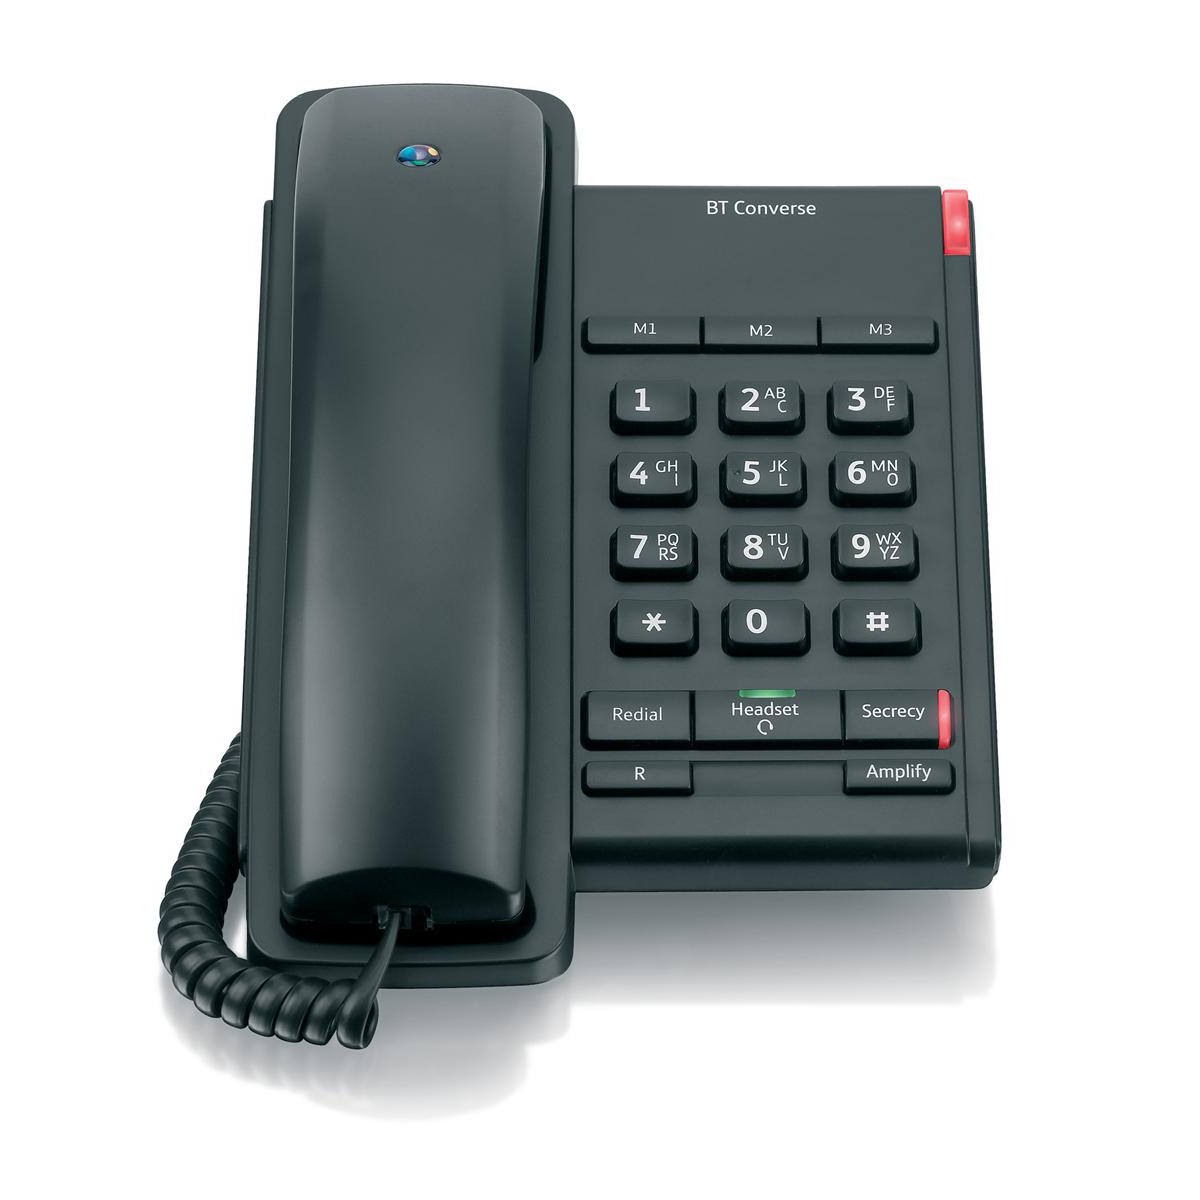 Image for BT Converse 2100 Telephone 1 Redial Mute Function 3 Number Memory Black Ref 040206